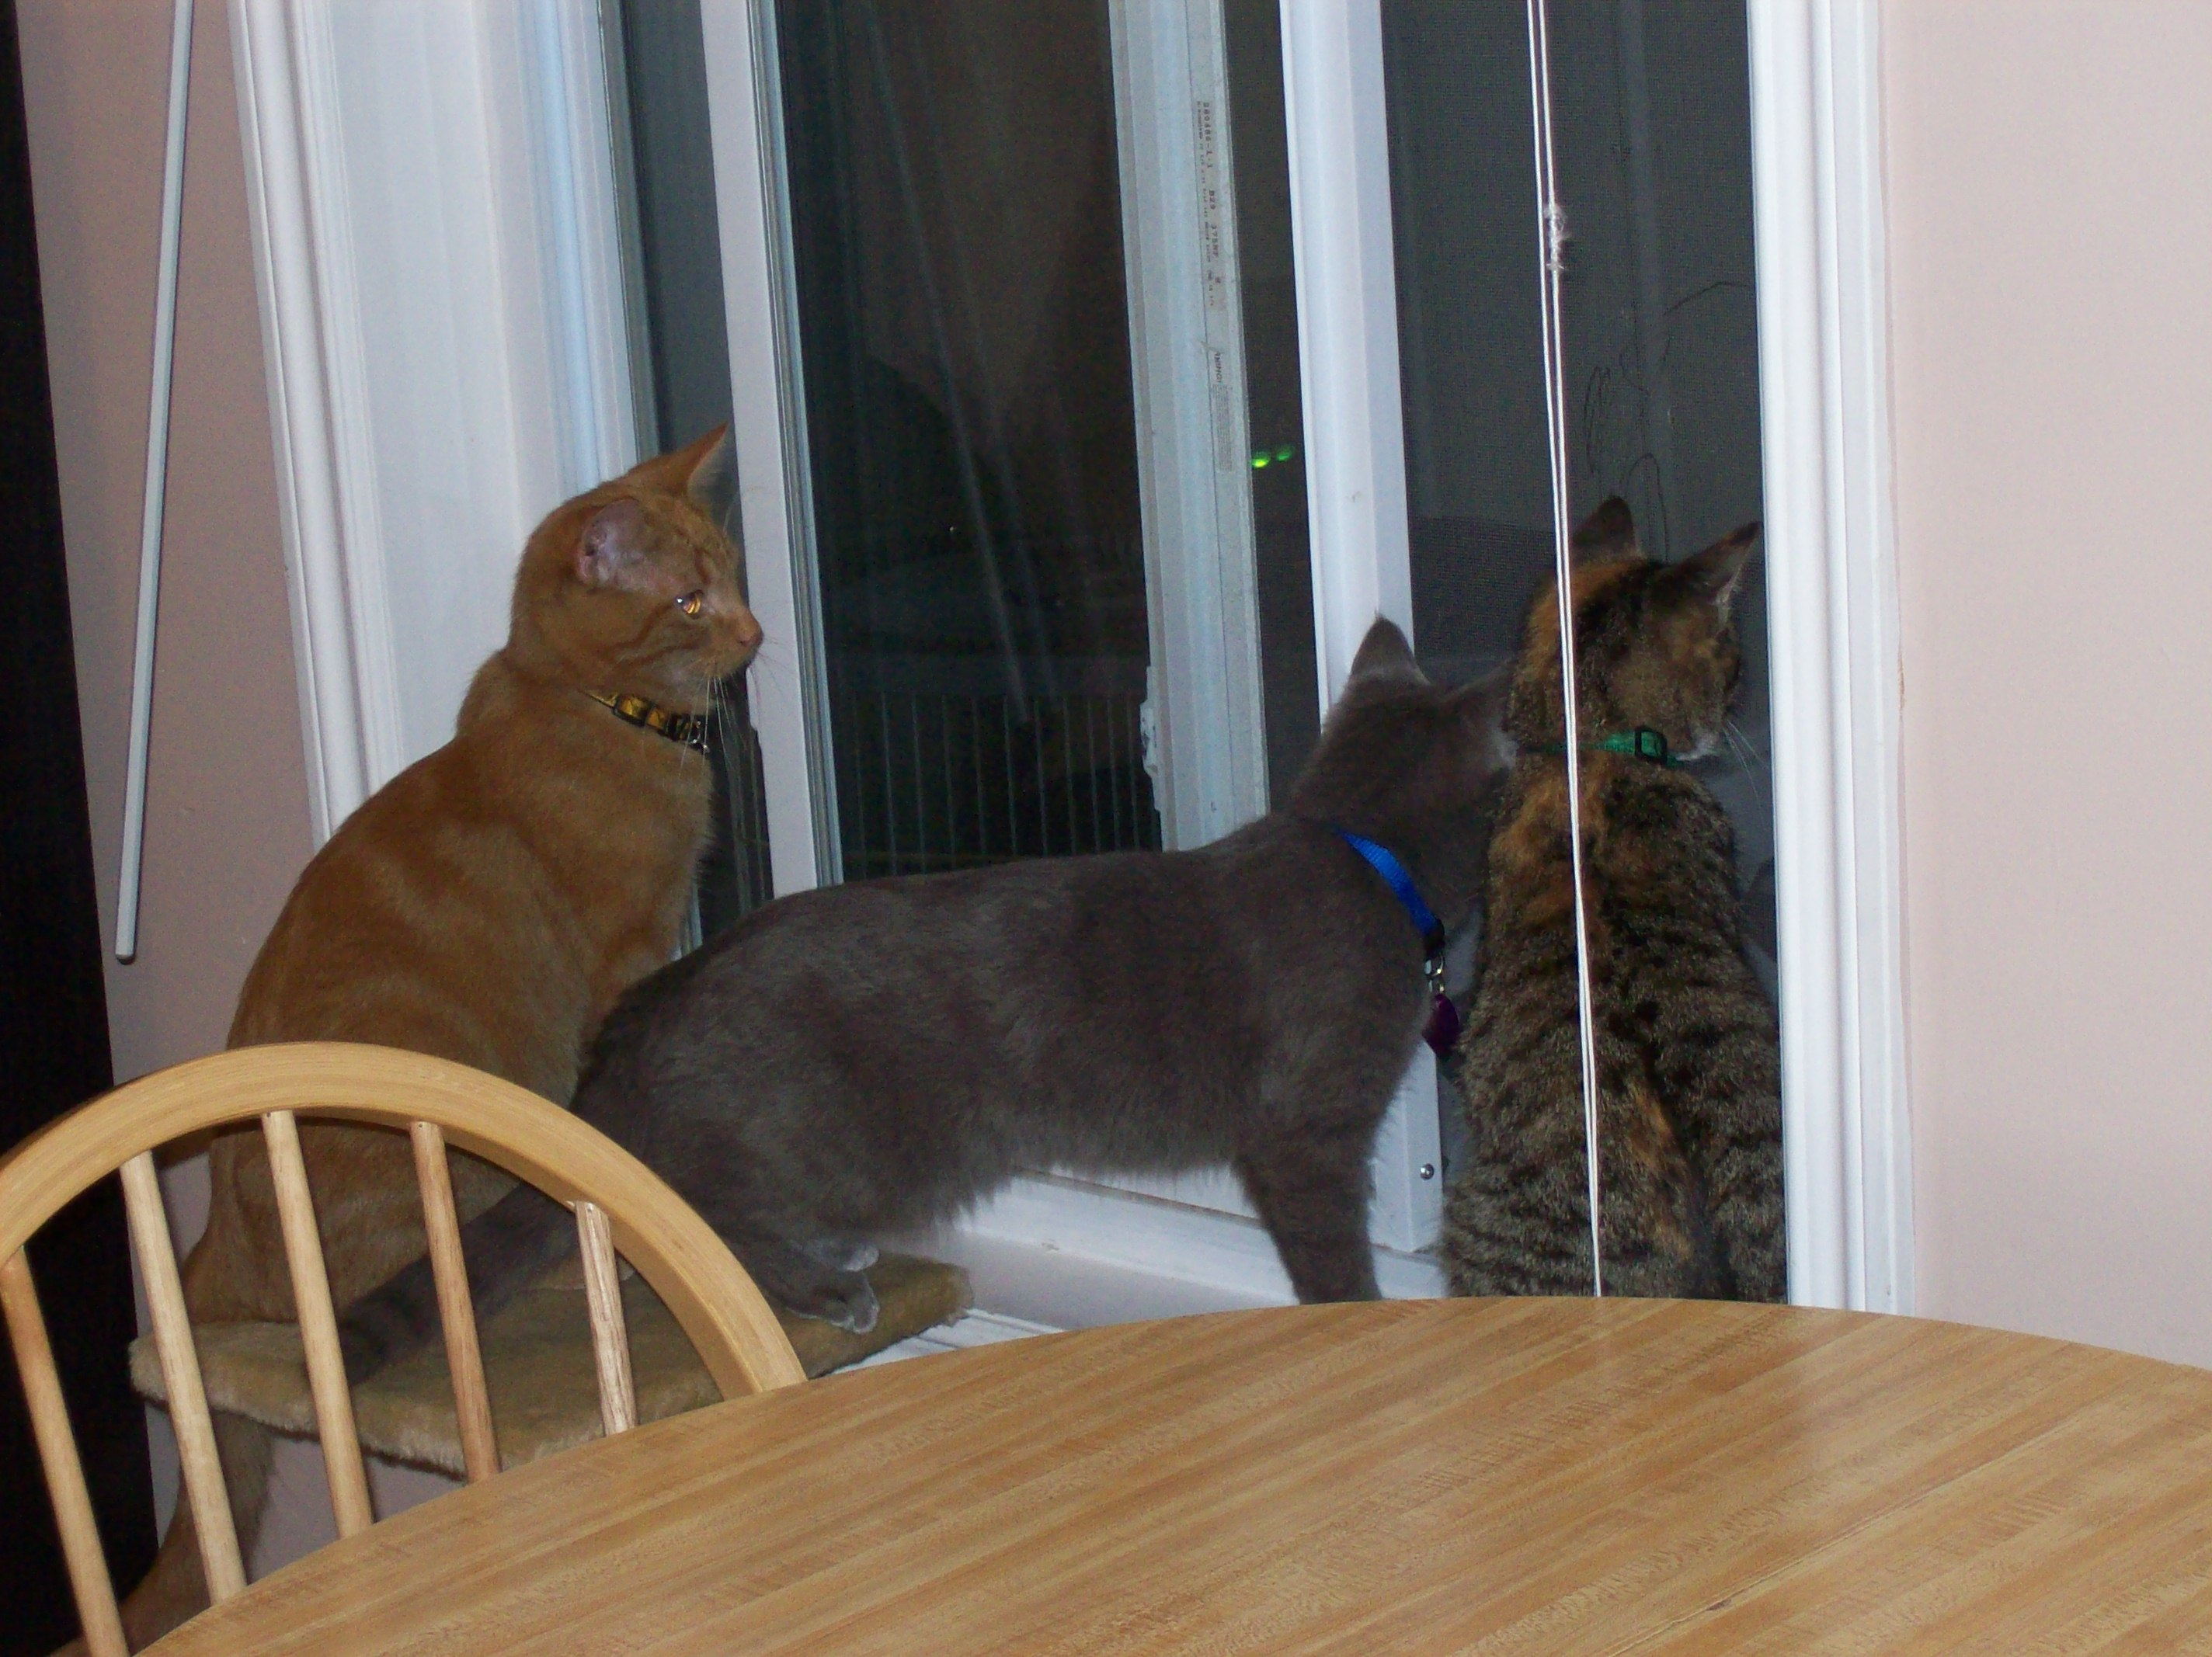 All Three Looking Out Open Window